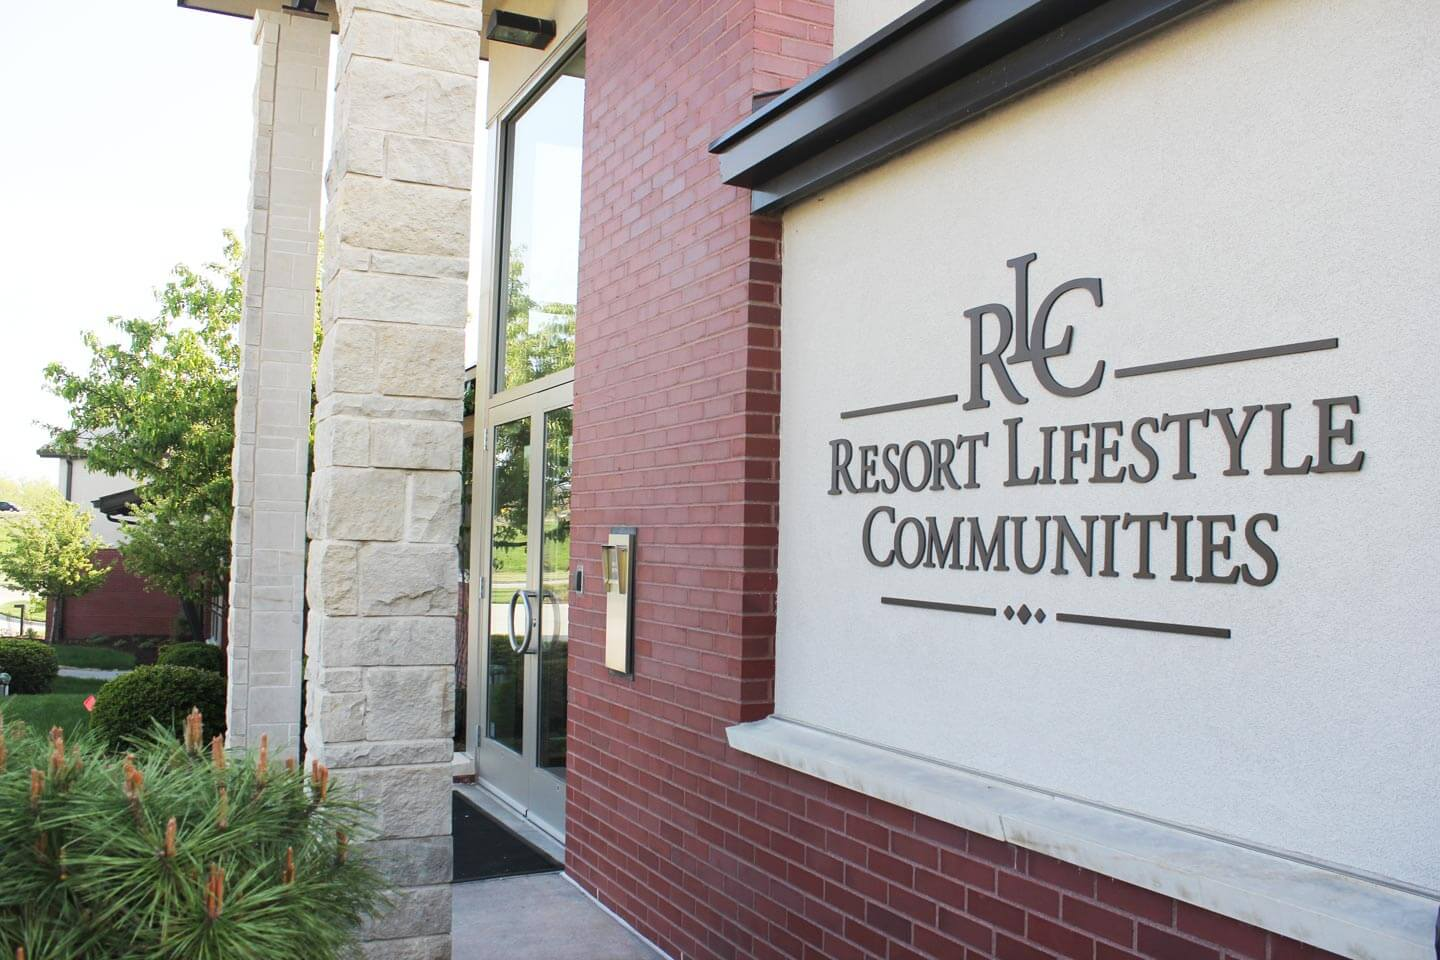 Welcome to Resort Lifestyle Communities! Our allinclusive independent living communities are developed exclusively for adults aged 55 and over.